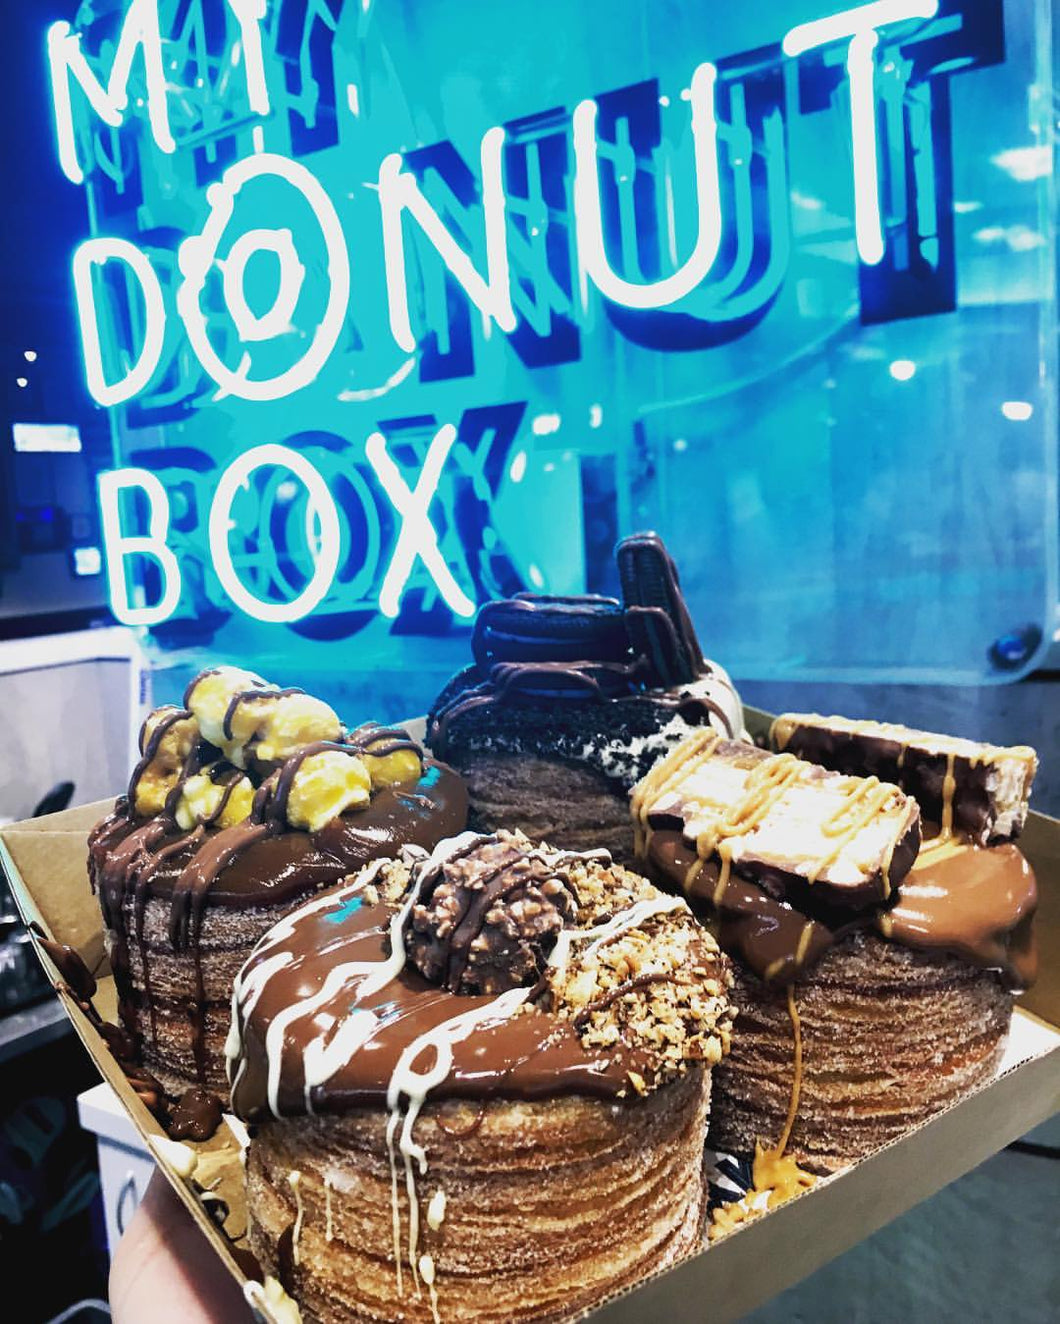 4 PACK CRONUT MIX